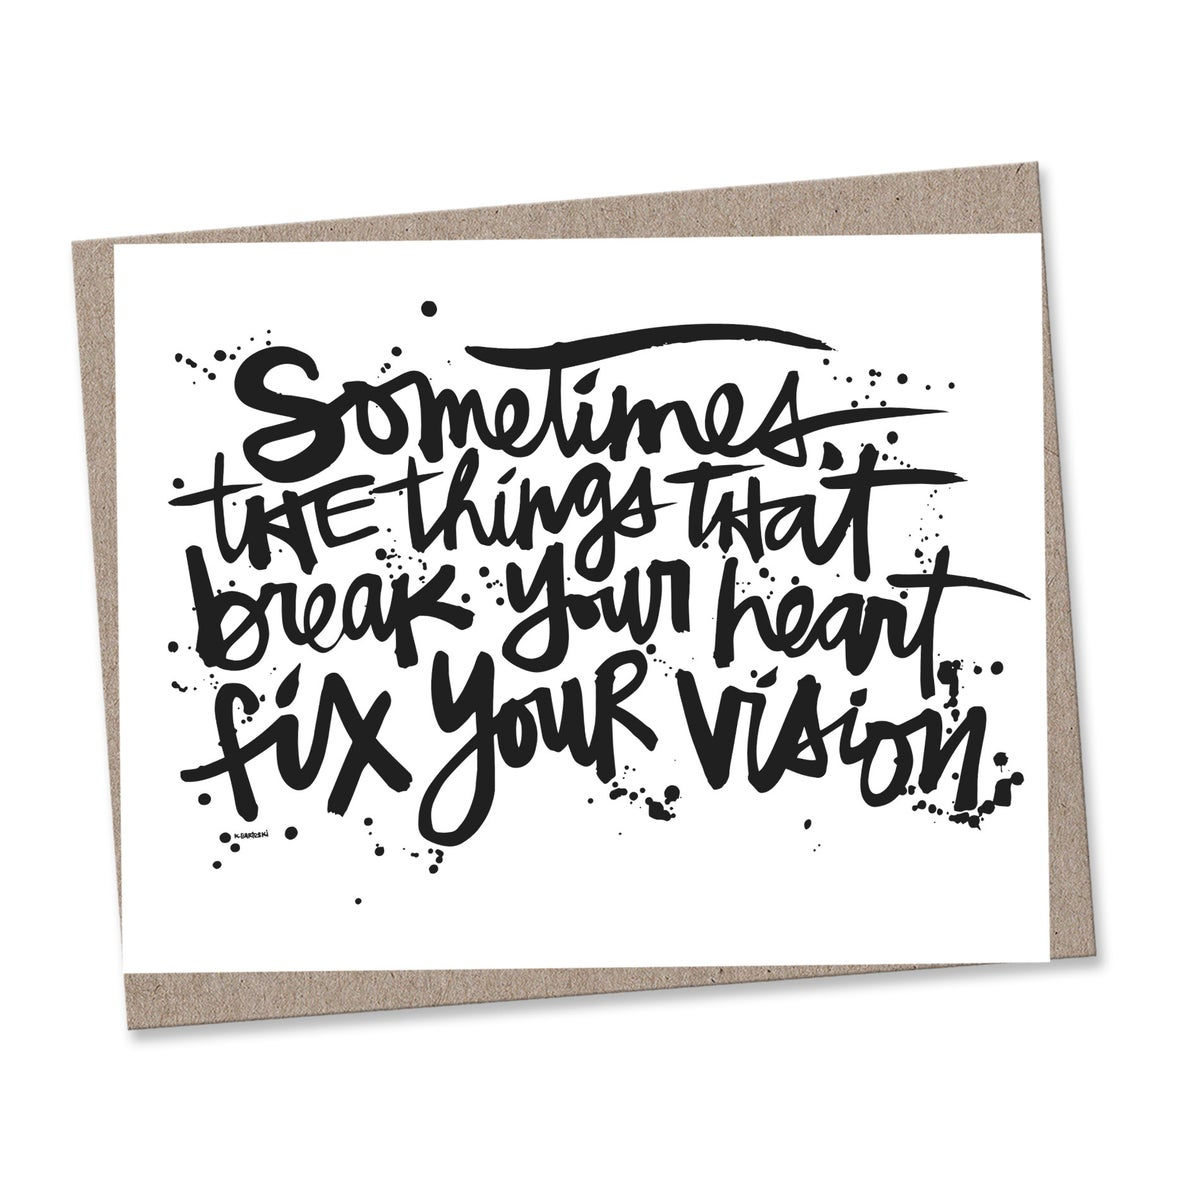 Image of FIX YOUR VISION #kbscript print